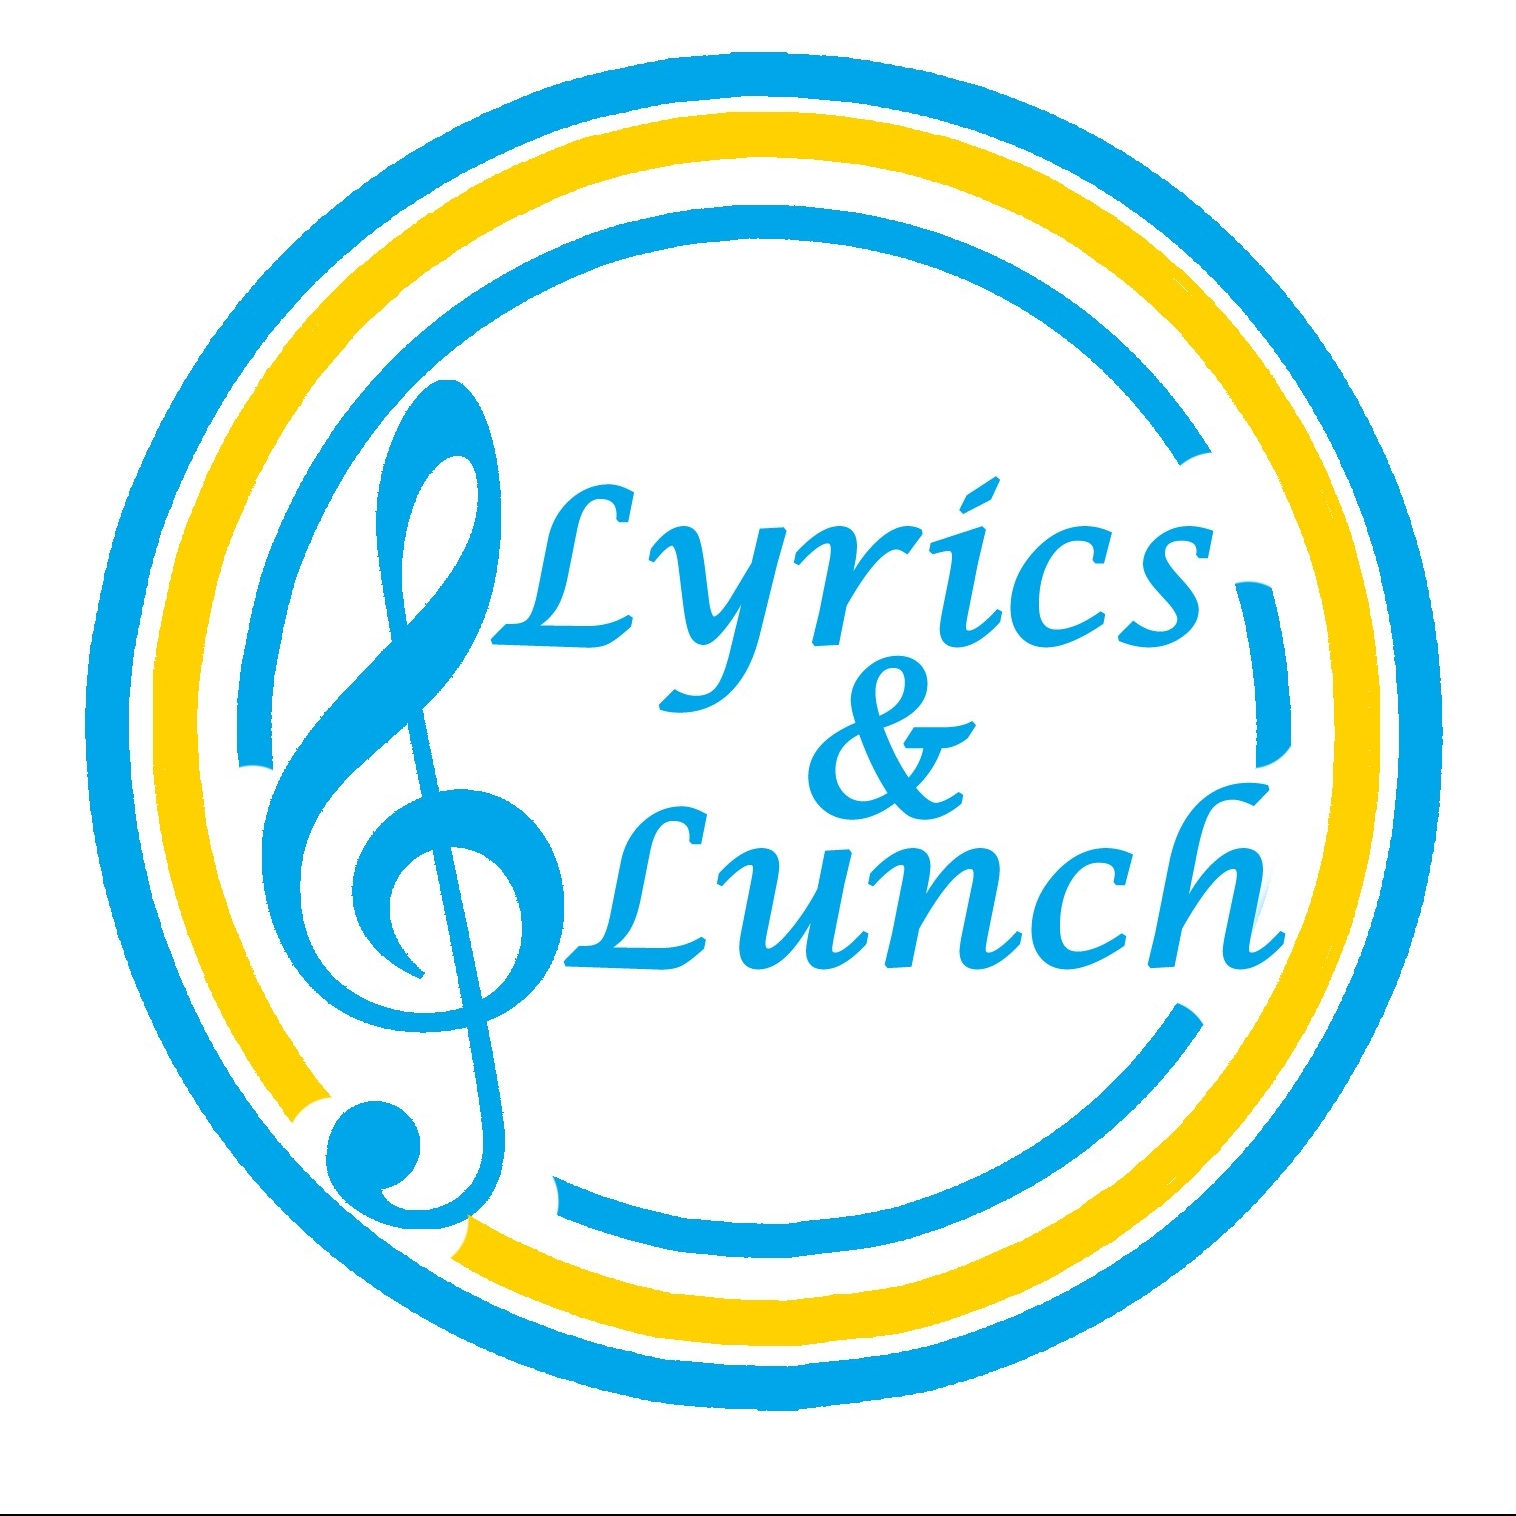 Lyrics and Lunch music to feed the brain and lunch to enjoy together